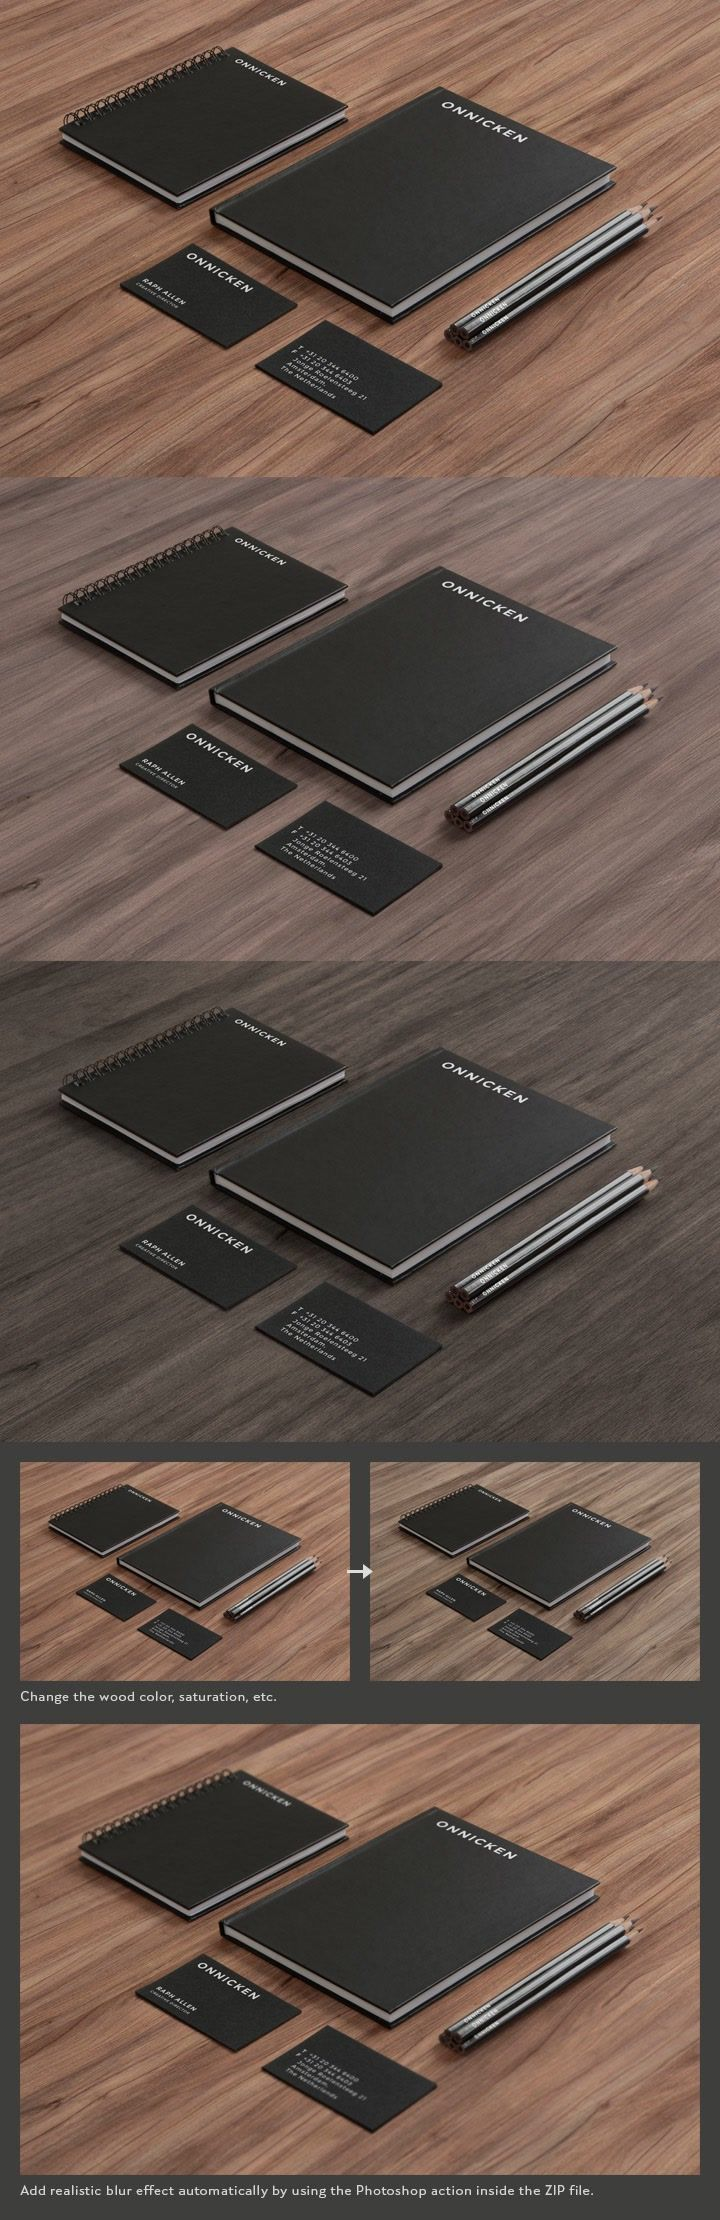 28 best great mockups for business cards images on pinterest free stationary mockup black paper on wood download all for free getfreeresources magicingreecefo Choice Image